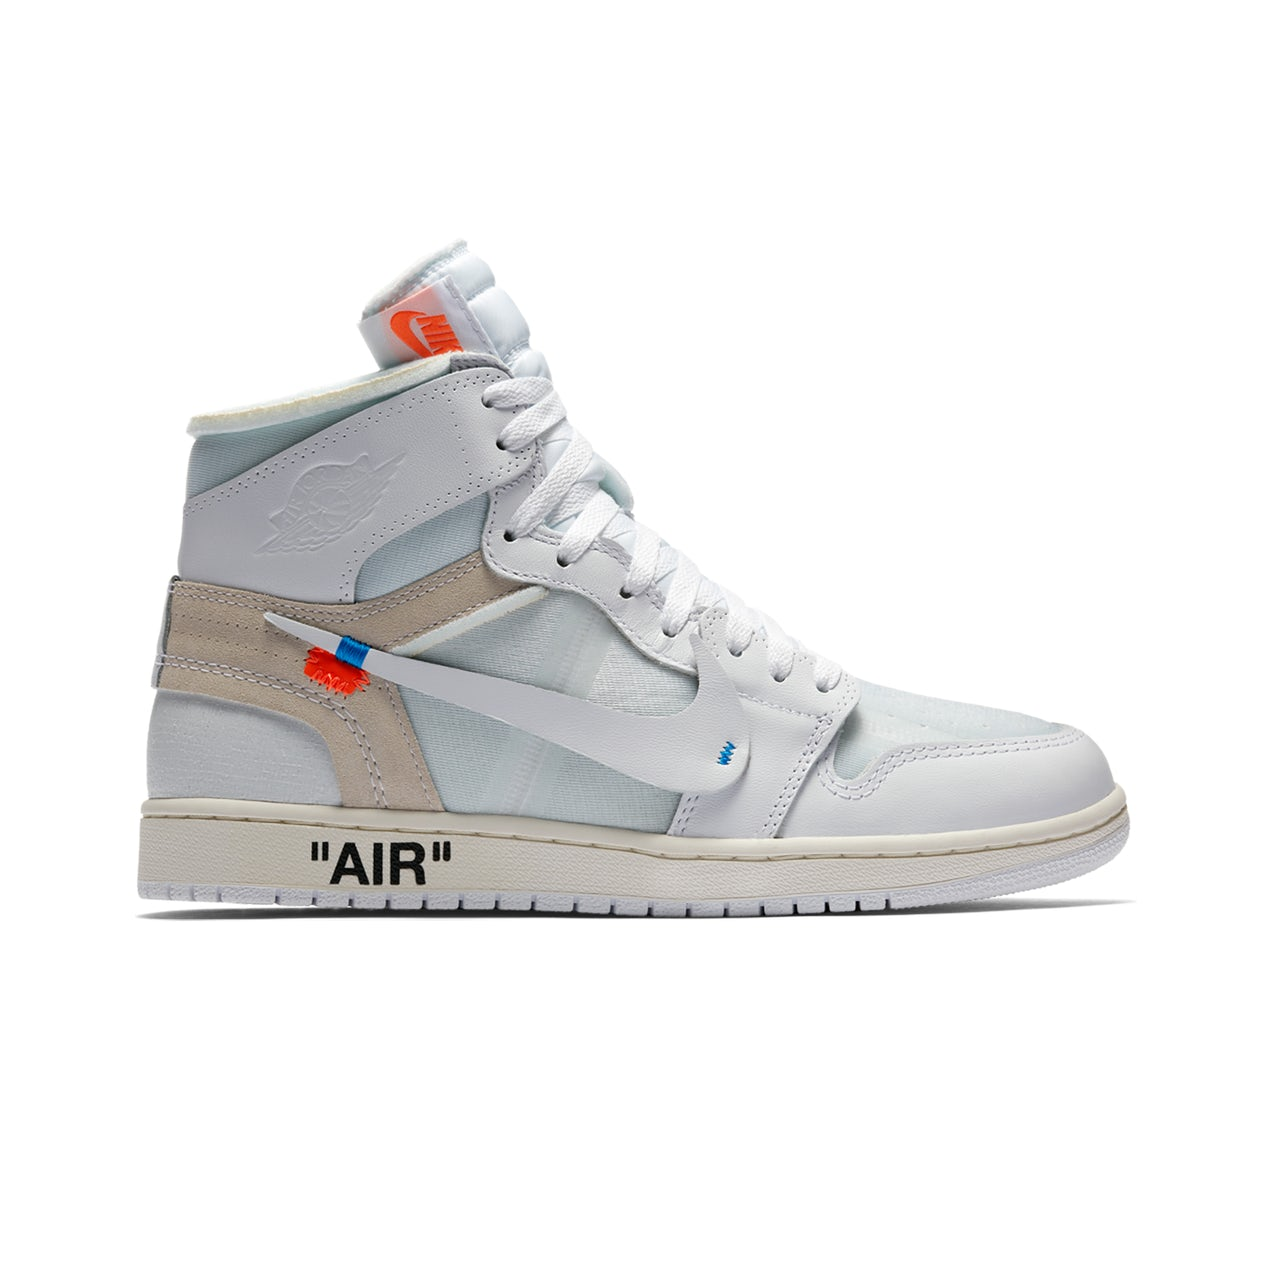 02536c76b8e7c A Definitive Ranking of Virgil Abloh s Off-White Nike Collabs    ONE37pm